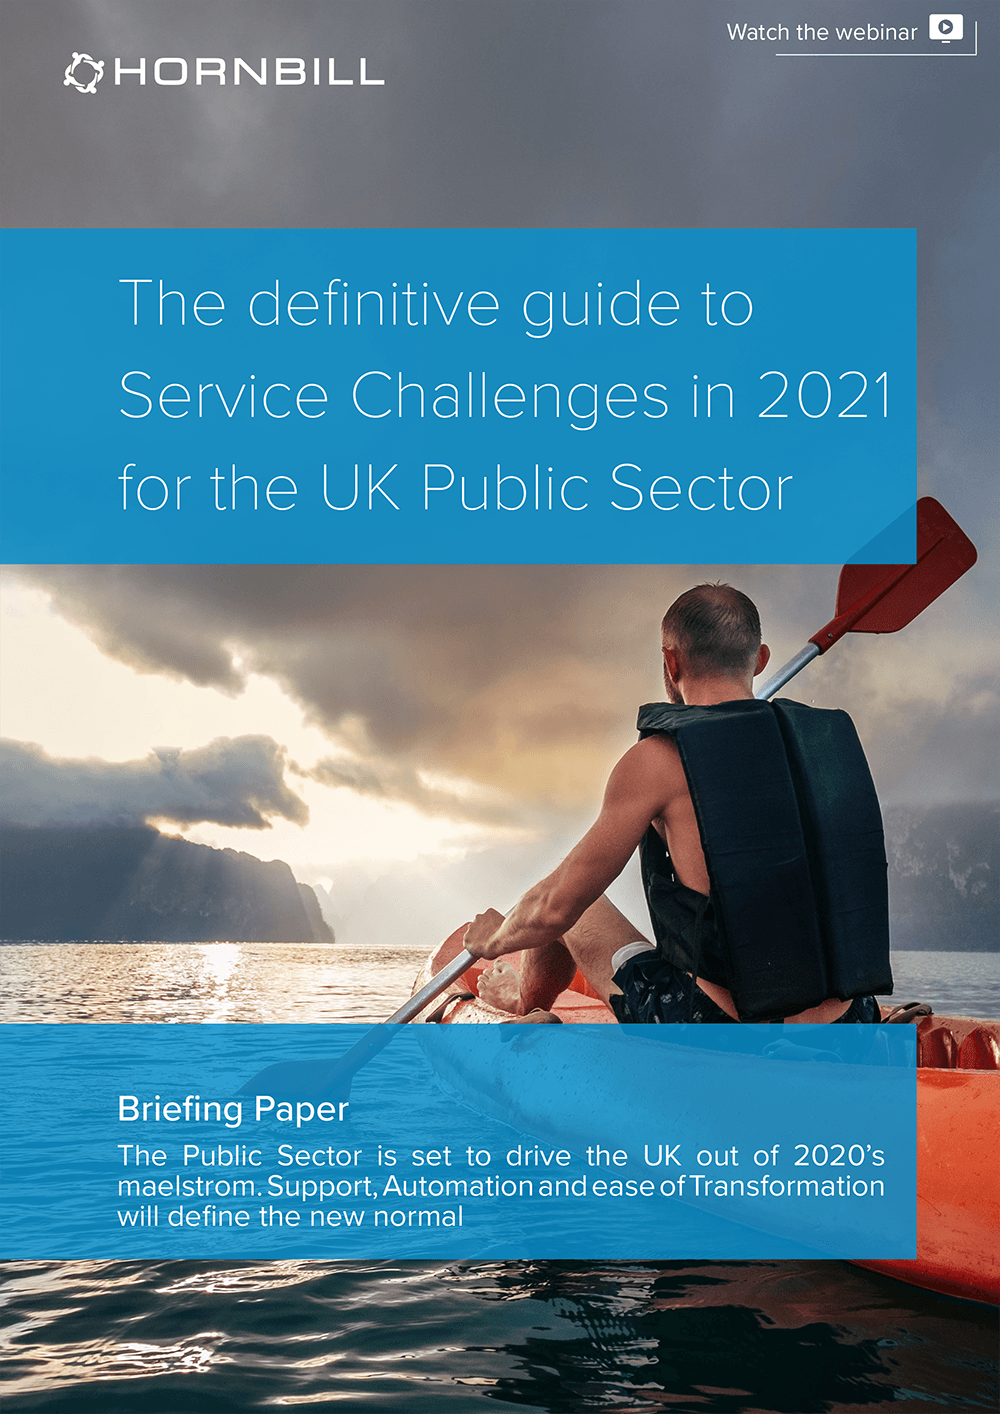 The Definitive Guide to Service Challenges in 2021 for the UK's Public Sector avatar